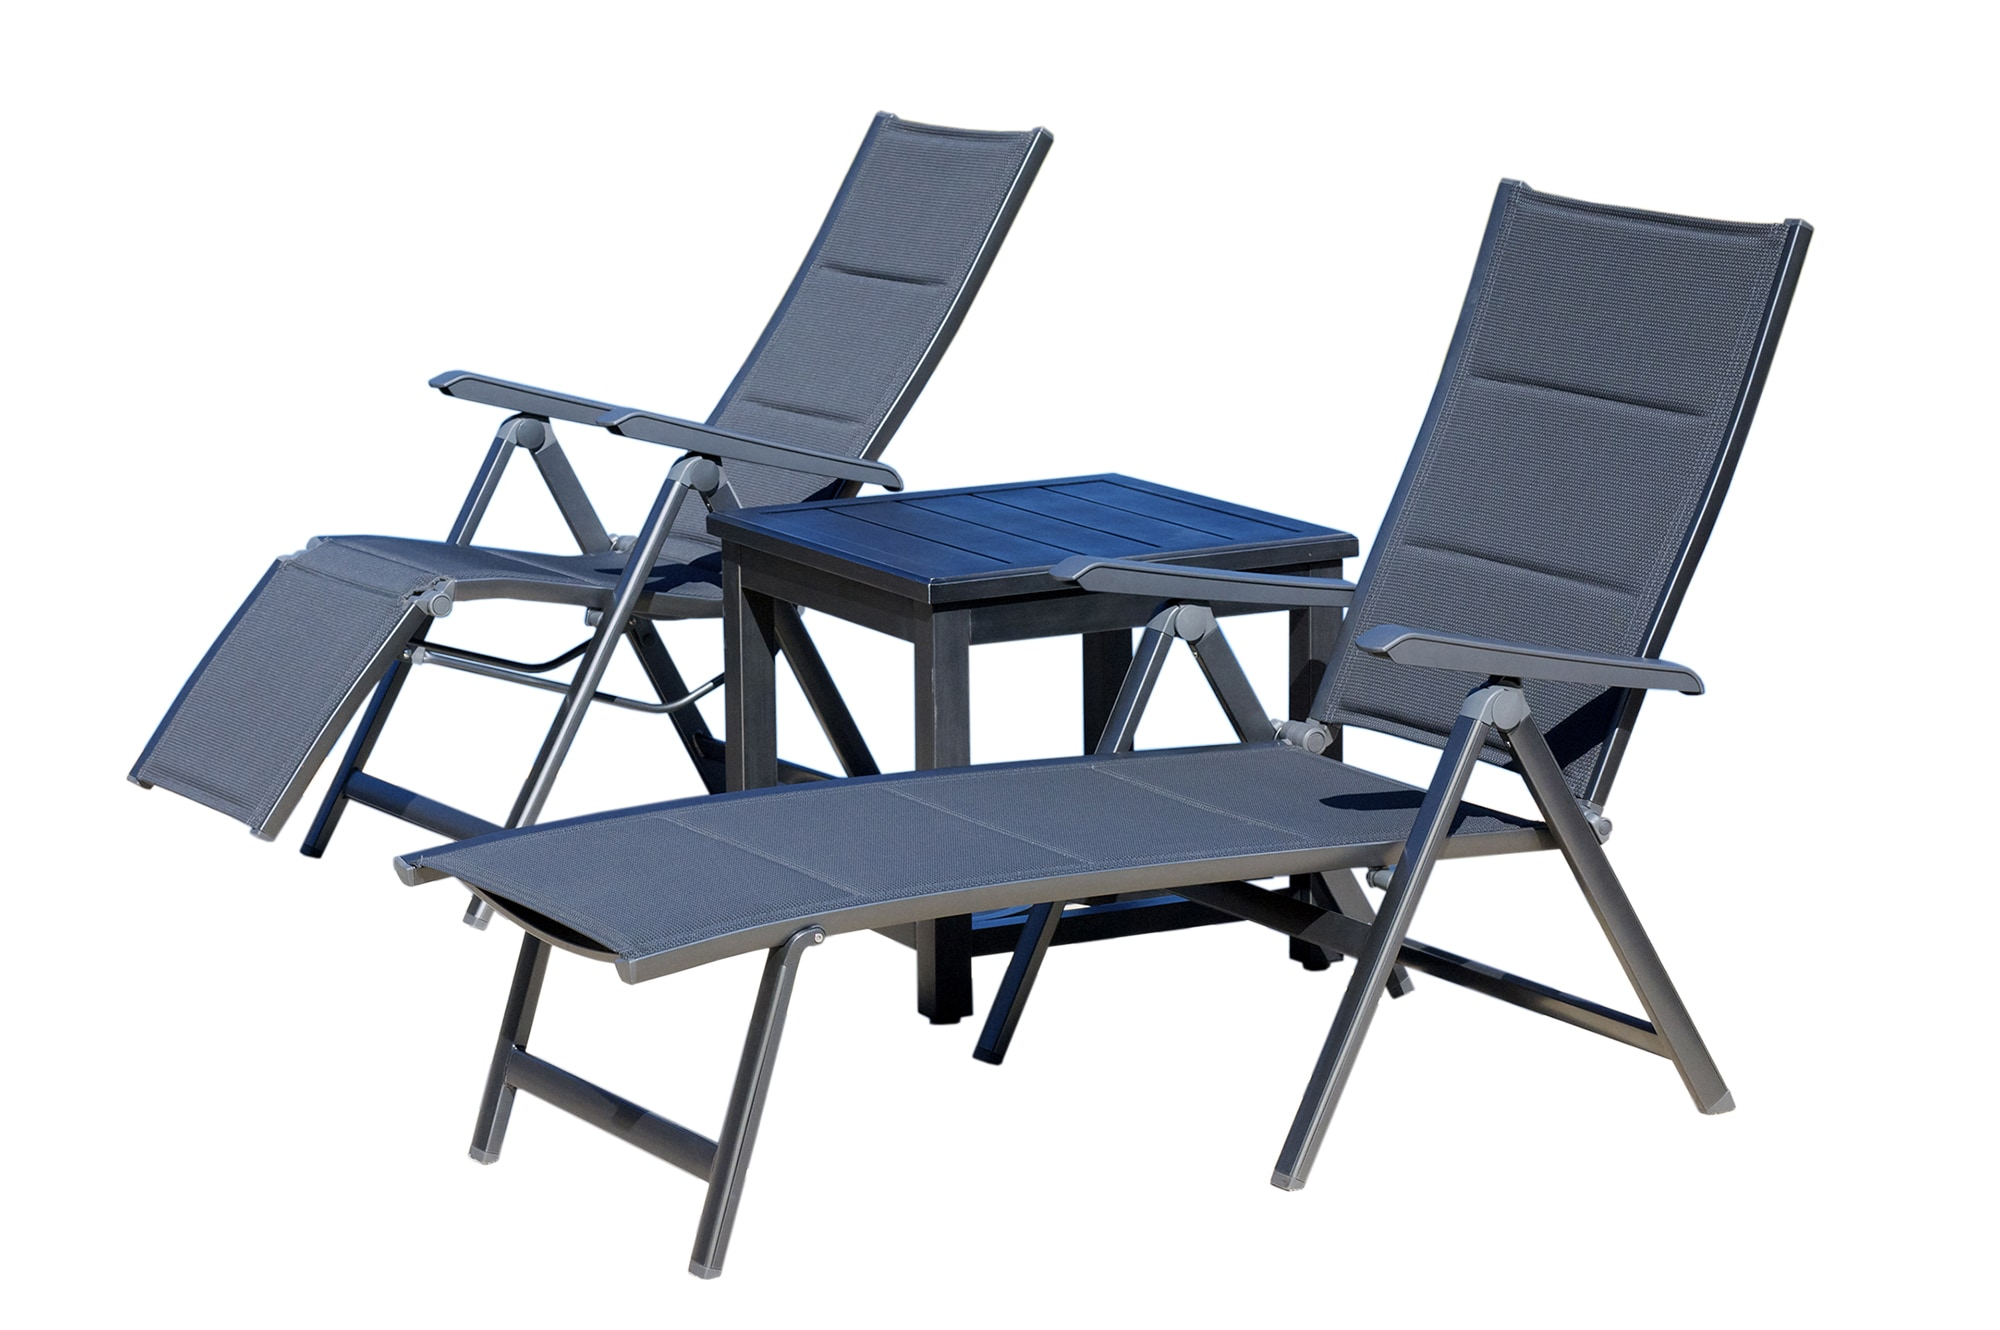 Mayaro beach pool lounge aluminum chaise loungers w for Outdoor furniture malta